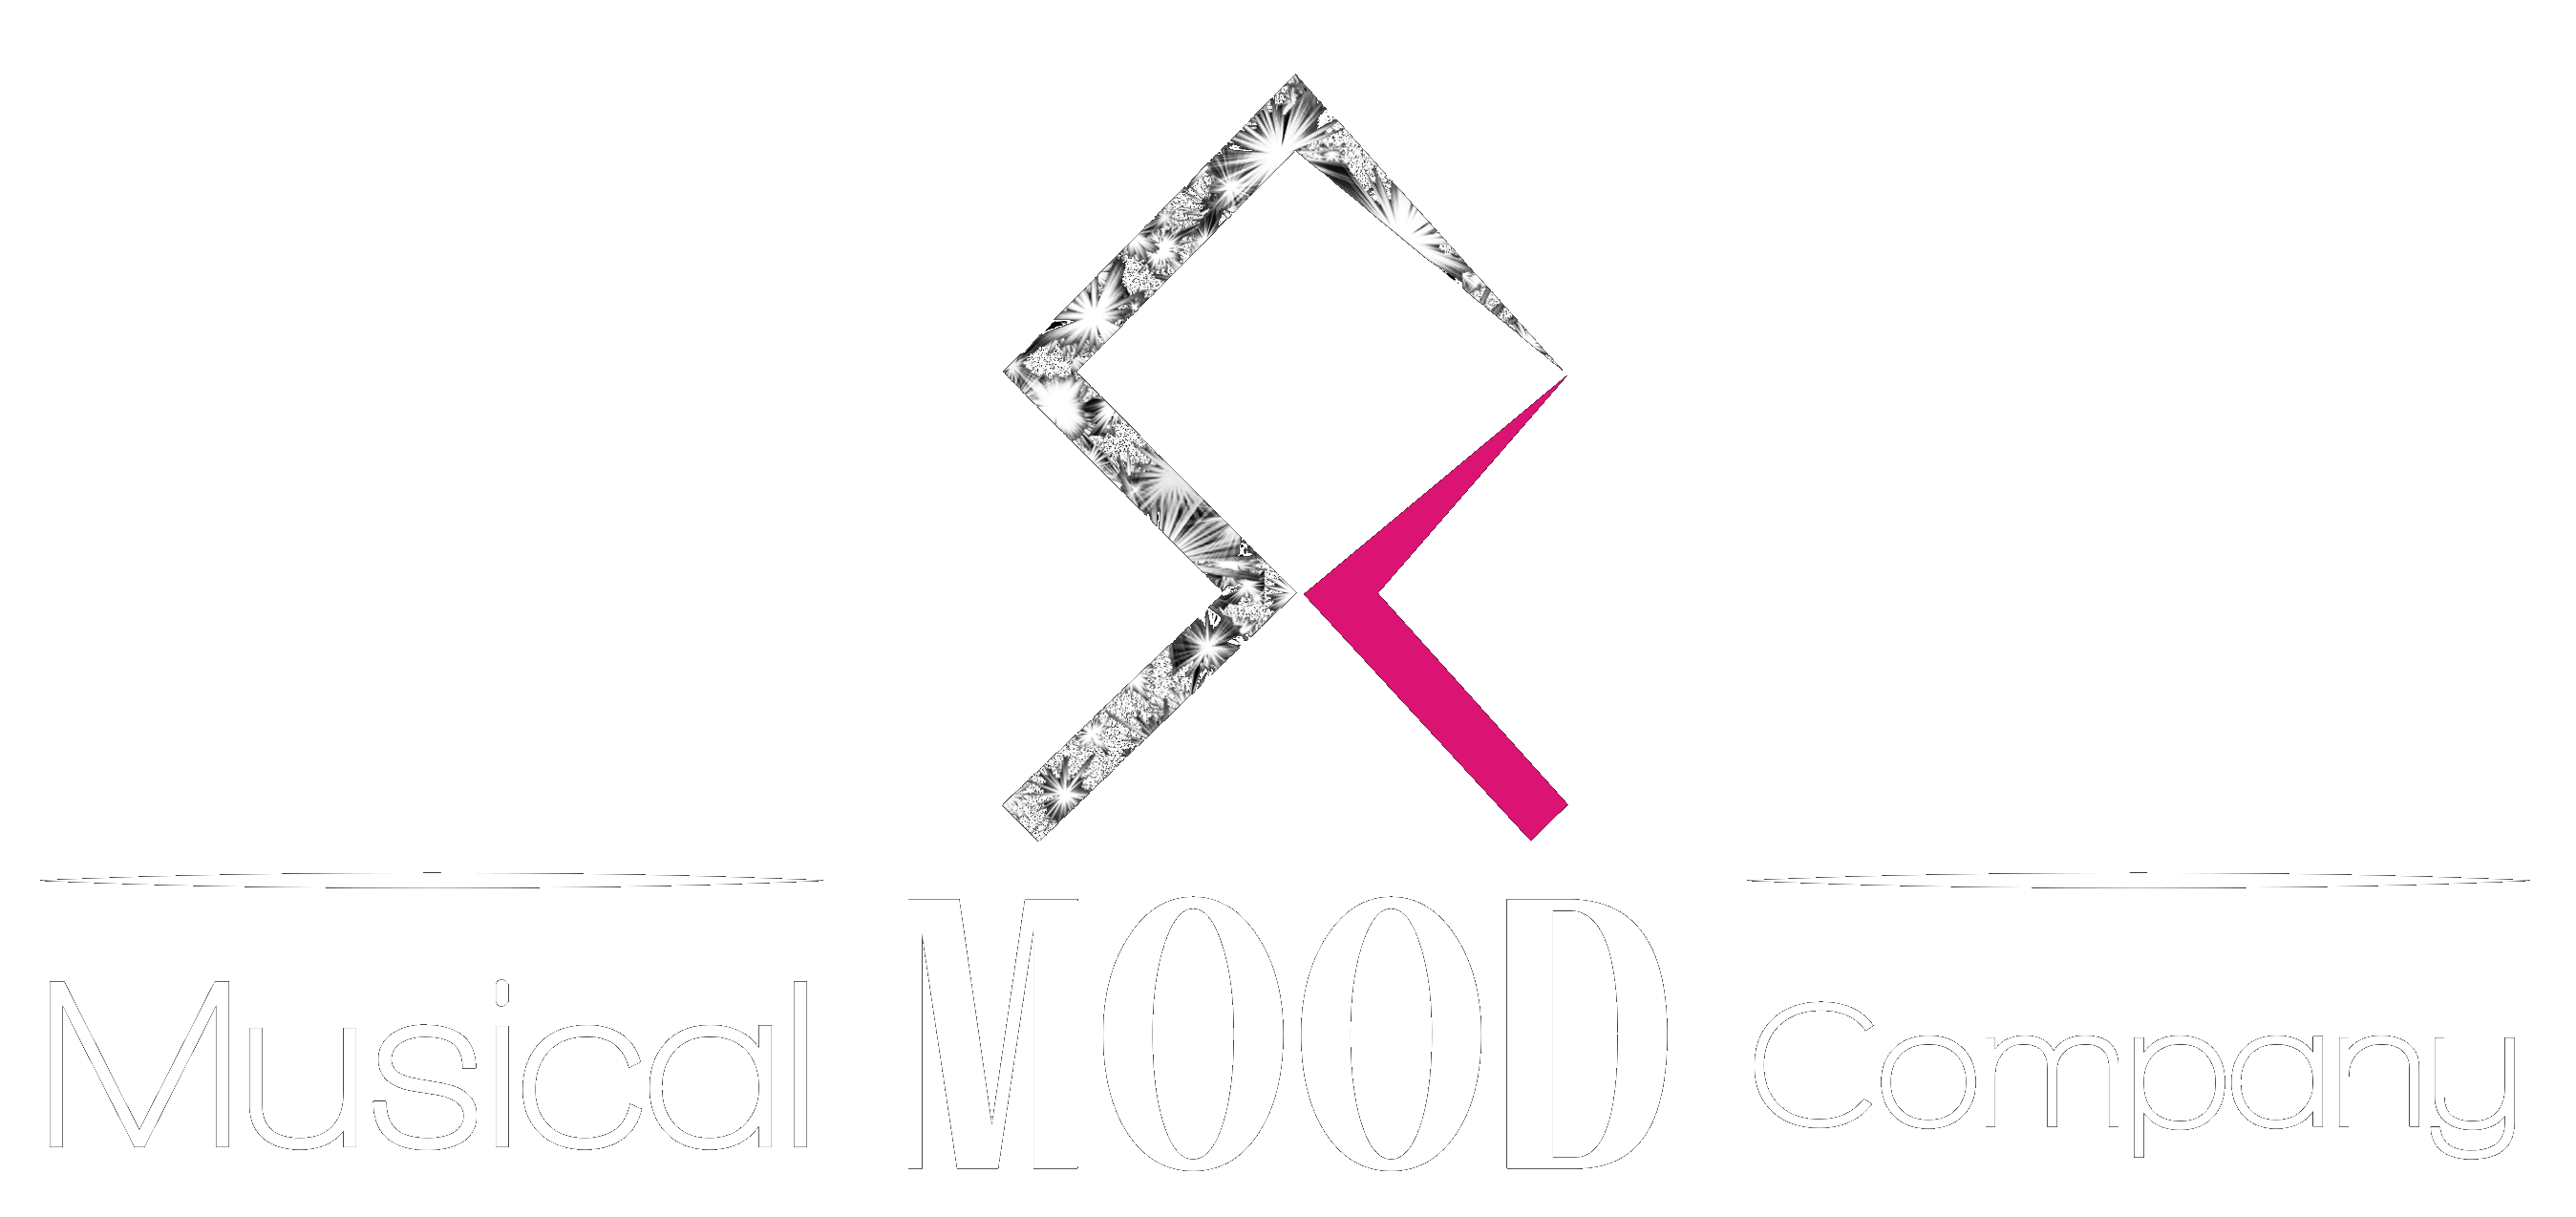 Musical Mood Company